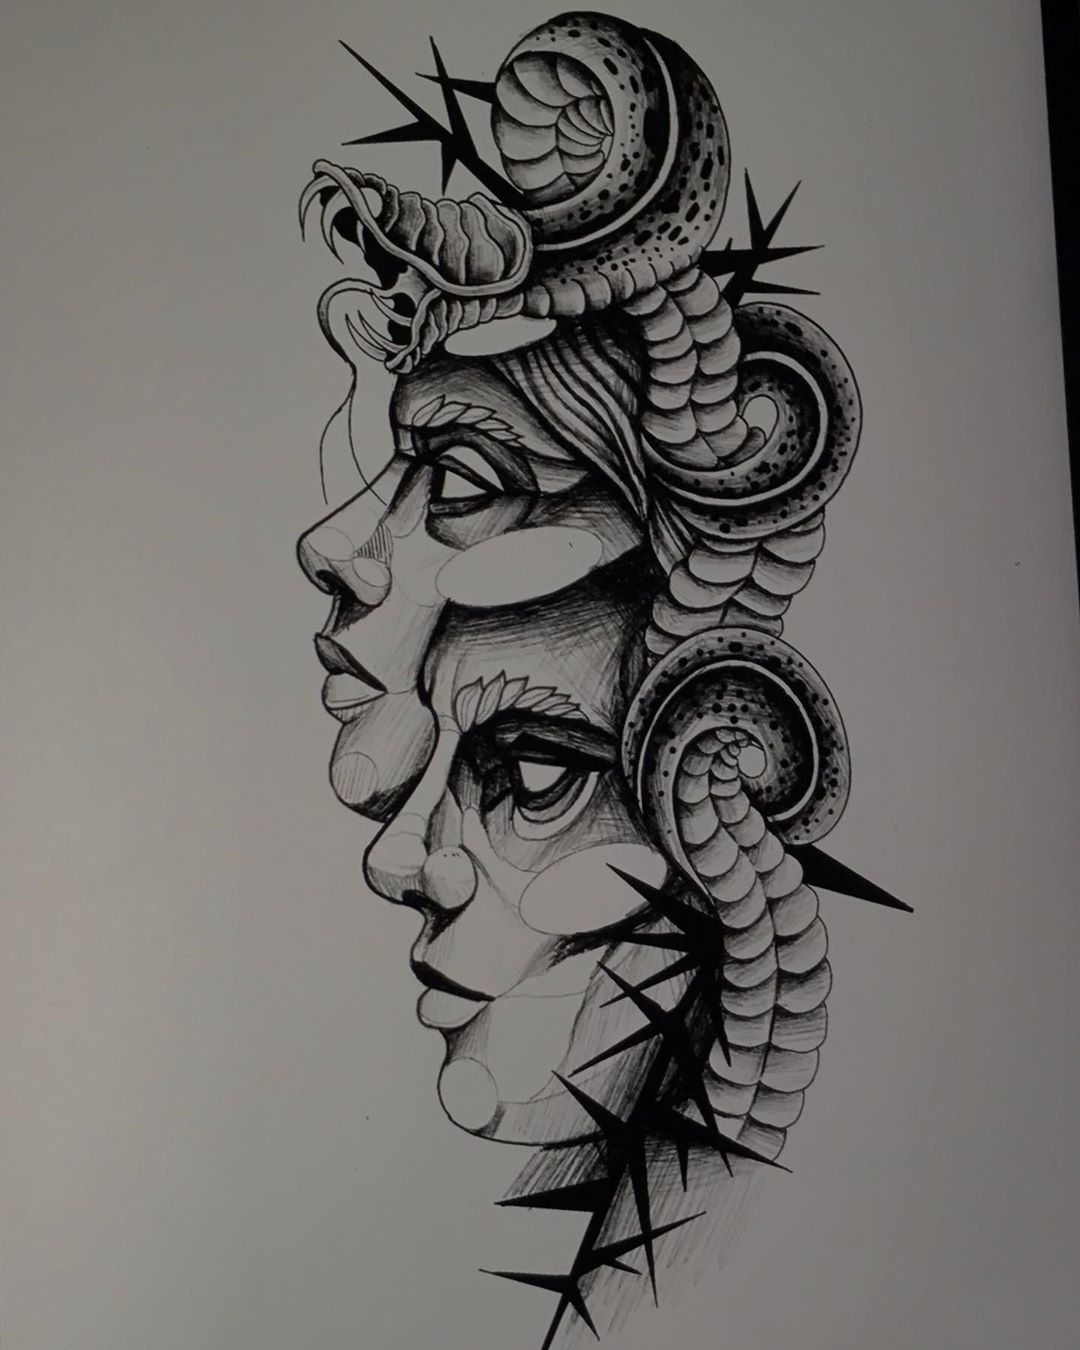 #tattoo #tattoos #blackwork #sketch #tattoodesign #tattoodesigns #tattoodesigner #tattoolife #tattoomagazine #tattootime #tattoodo #tattooer #tattooartist #